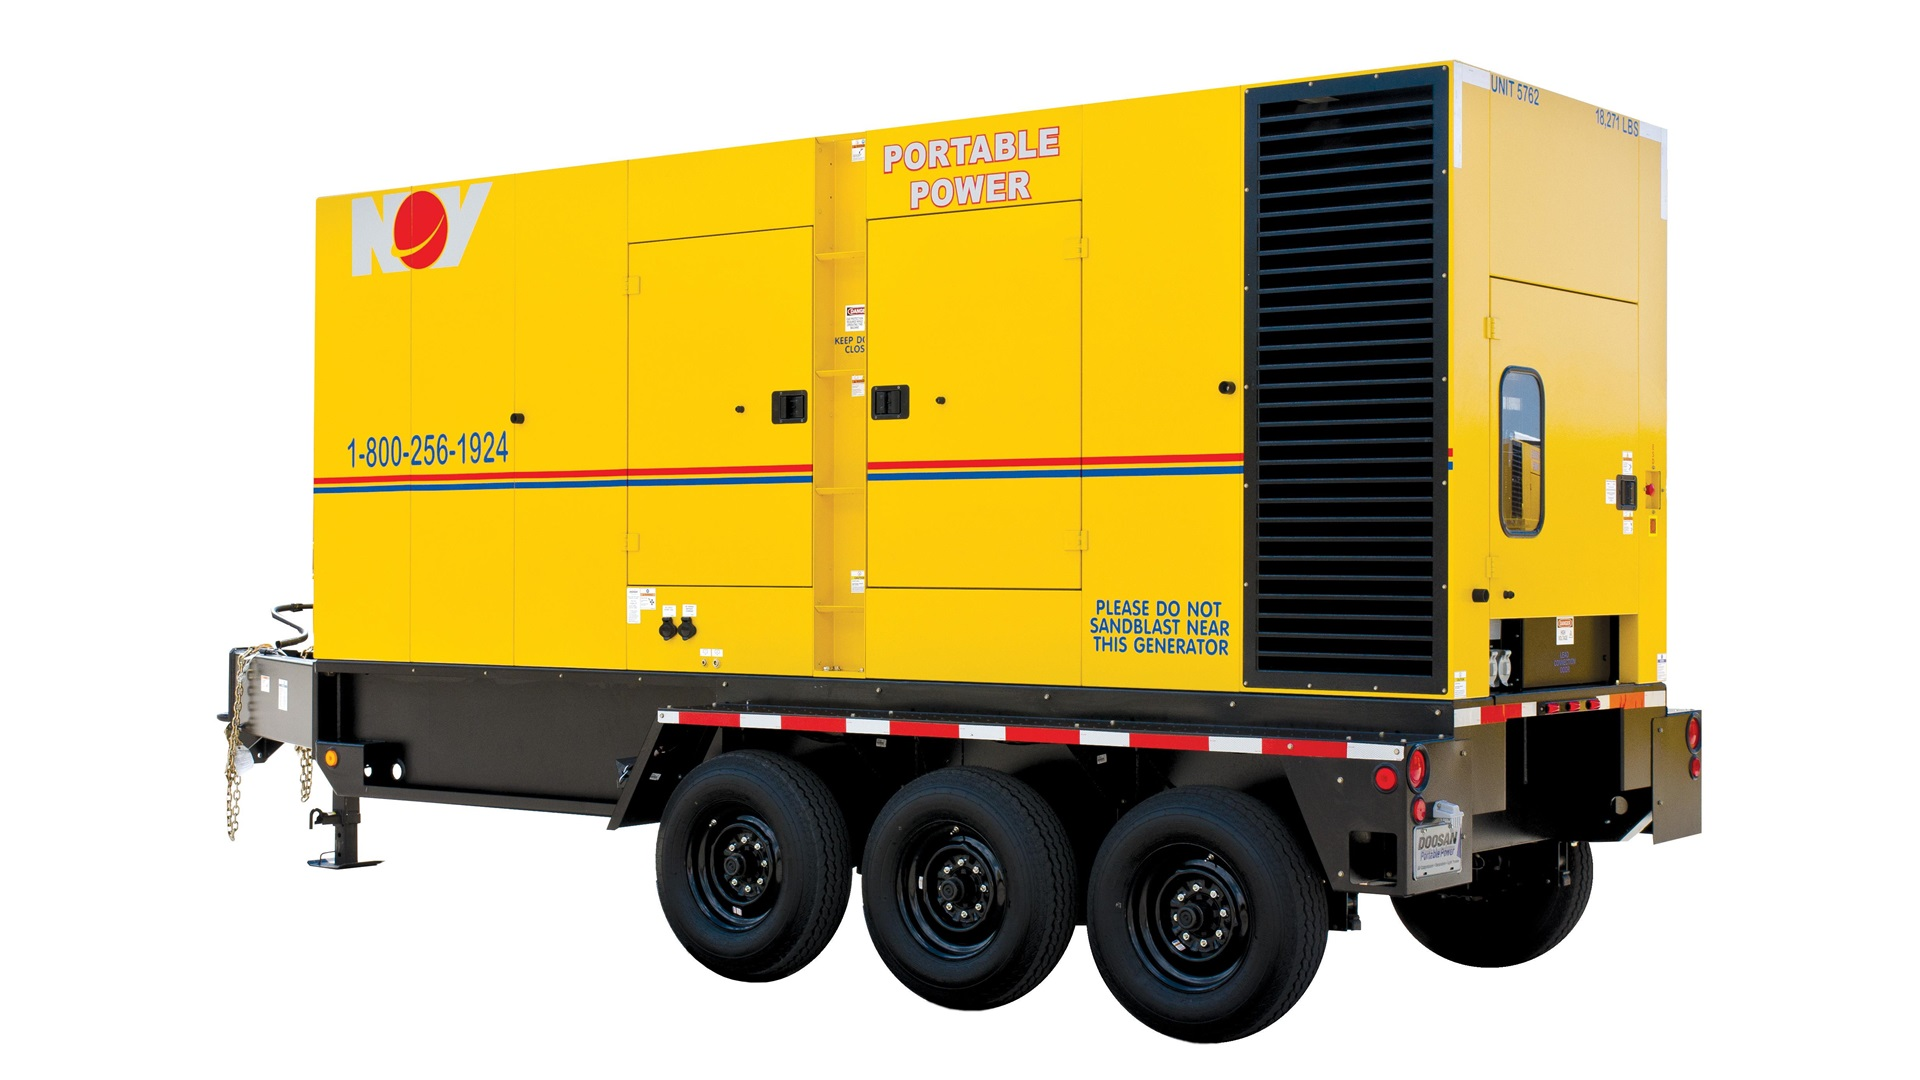 Render of Onshore Diesel Generators US largeportable power unit